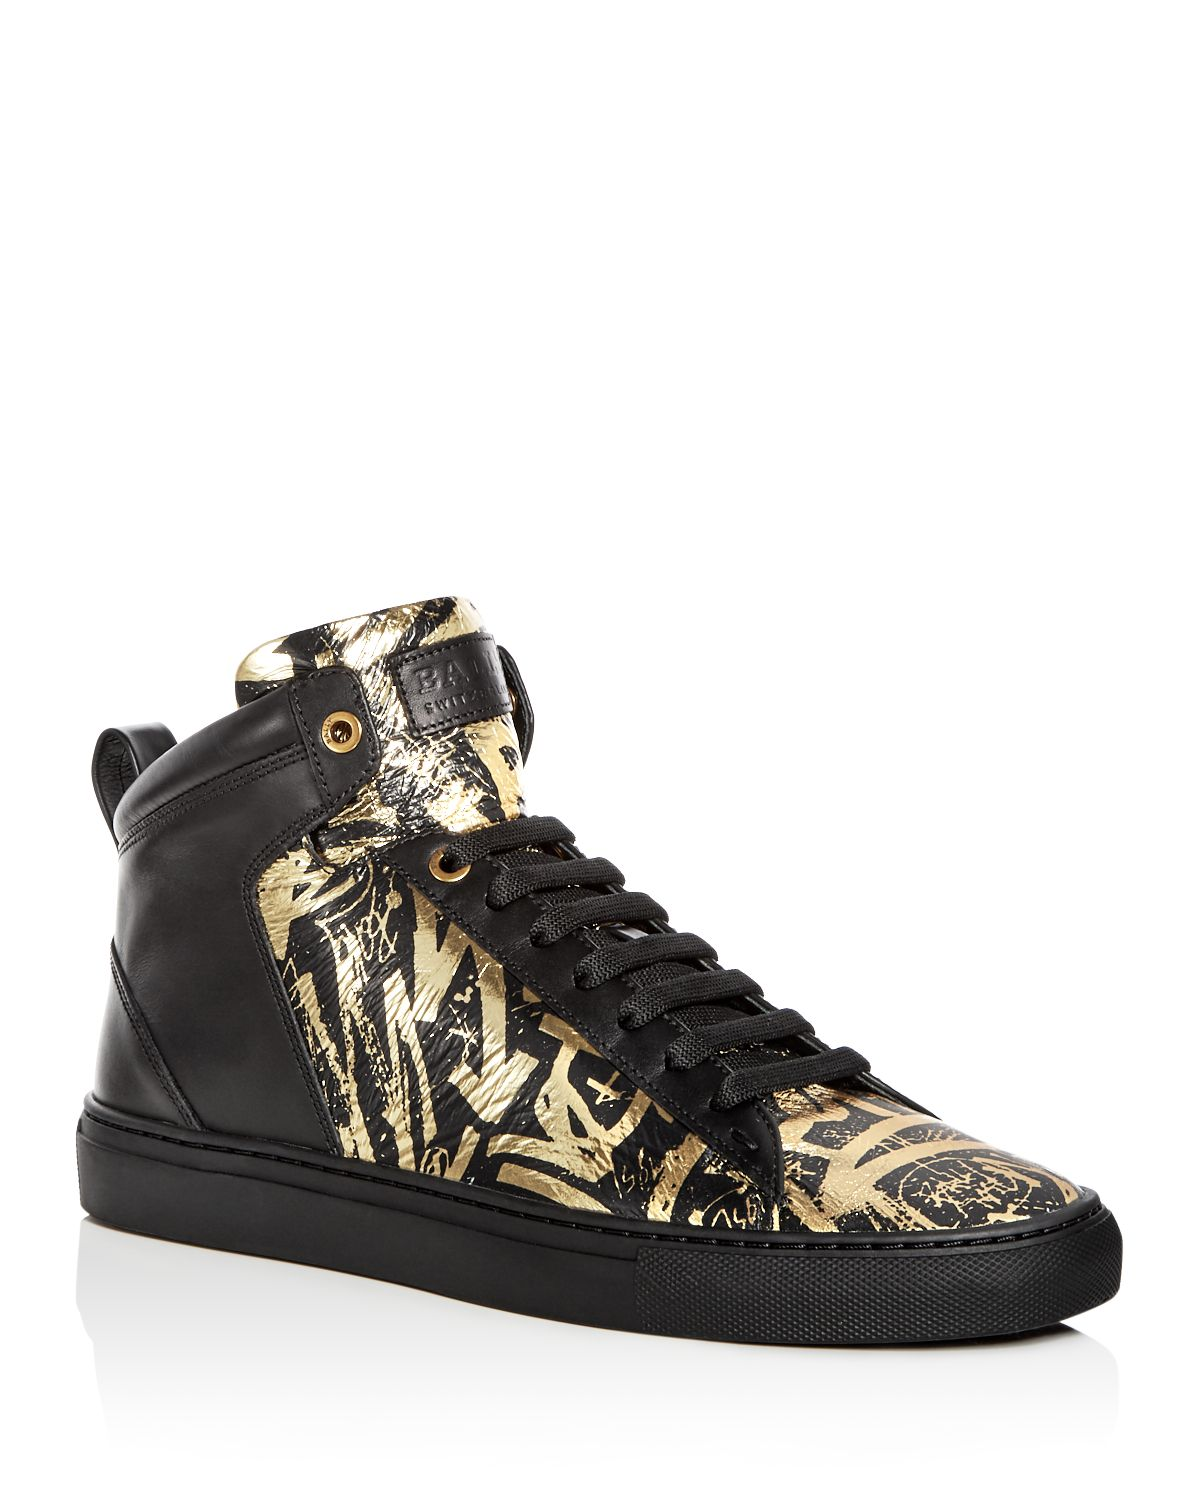 Bally Men's Hedo Leather High Top Sneakers